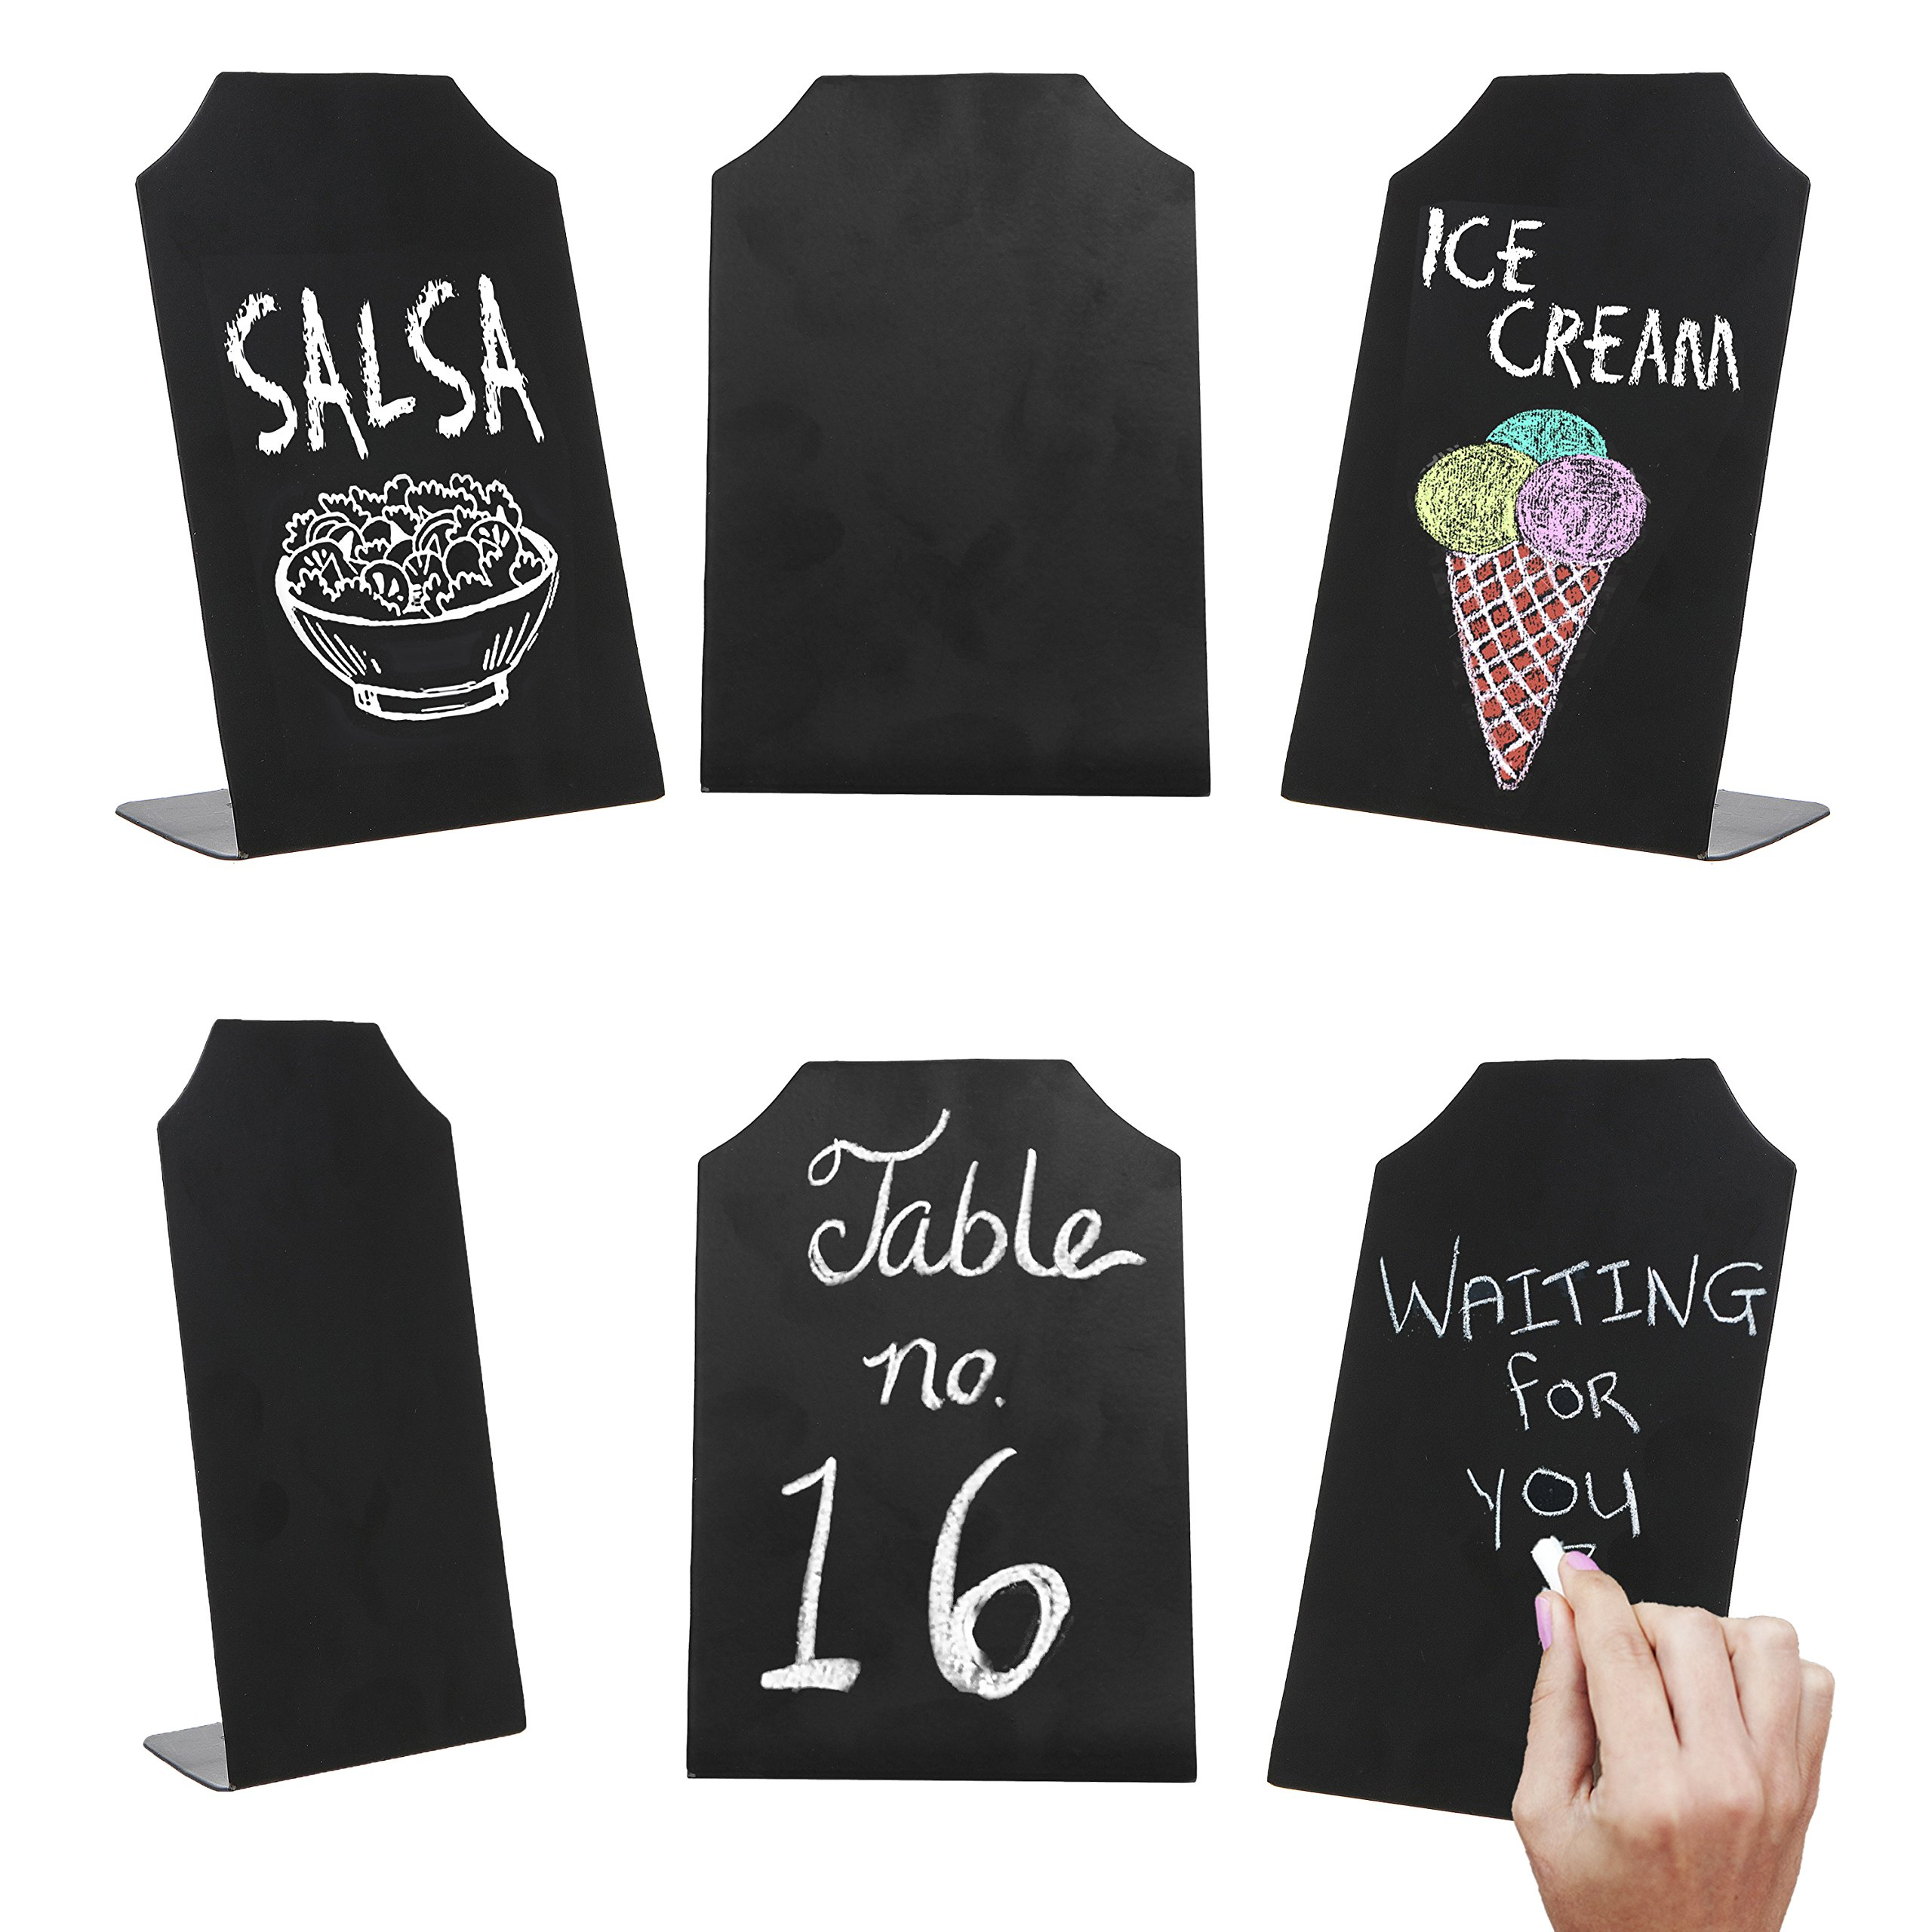 MyGift 6 Inch Small Black Erasable Chalkboard Memo Message Signs, Wedding & Event Place Cards, Set of 6